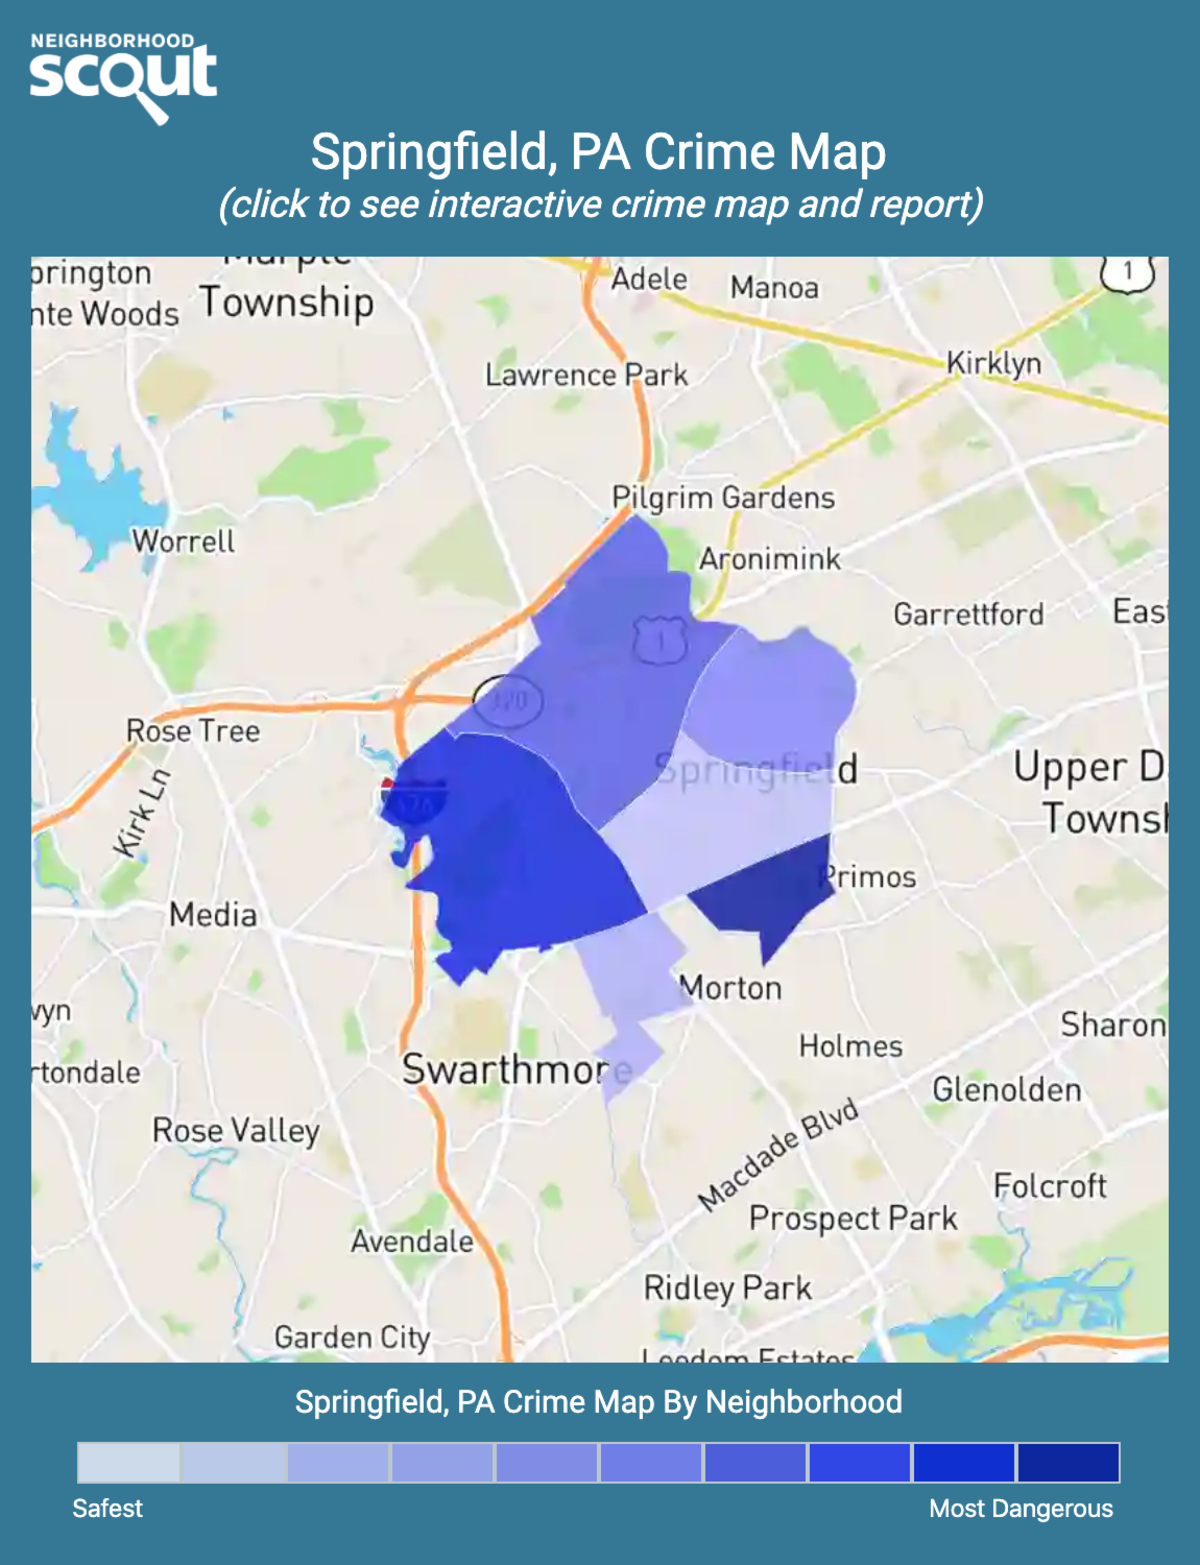 Springfield, PA Crime Rates and Statistics - NeighborhoodScout on map of flourtown pa, map of washington crown center pa, map of eastern montgomery county pa, map of haverford pa, map of delaware county pa, map of radnor pa downingtown, map of chester pa, map of millbourne pa, map of media pa, map of swarthmore pa, map of upper darby pa,